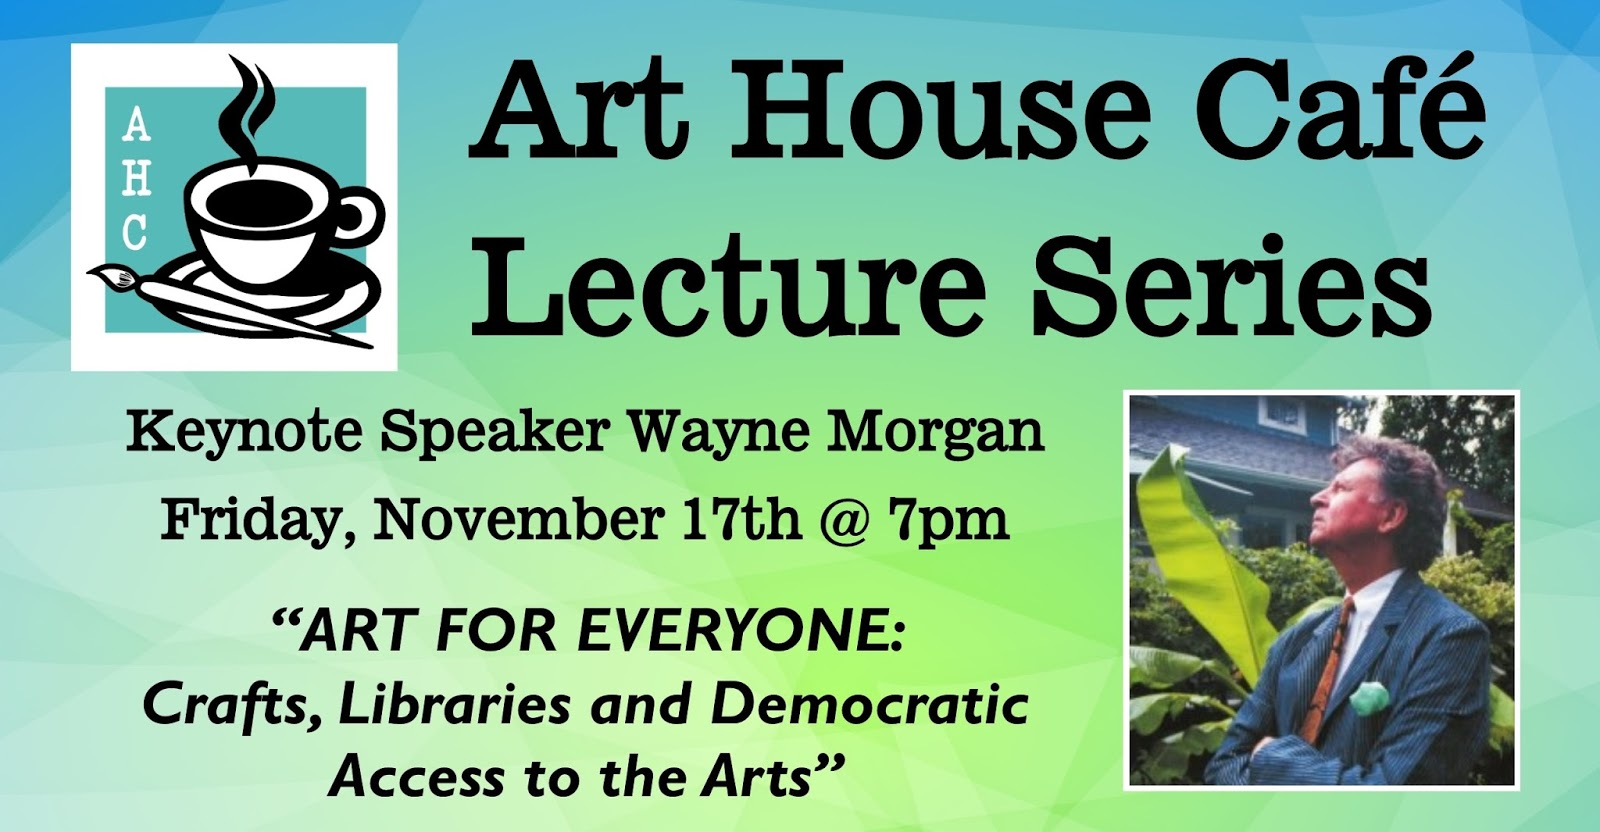 Grimsby Public Art Gallery Morgan Coffee Kopi Is Launching Its Sixth Season Of The House Caf Lecture Series Join Us Friday November 17th At 7pm For Our Keynote Speaker Wayne As